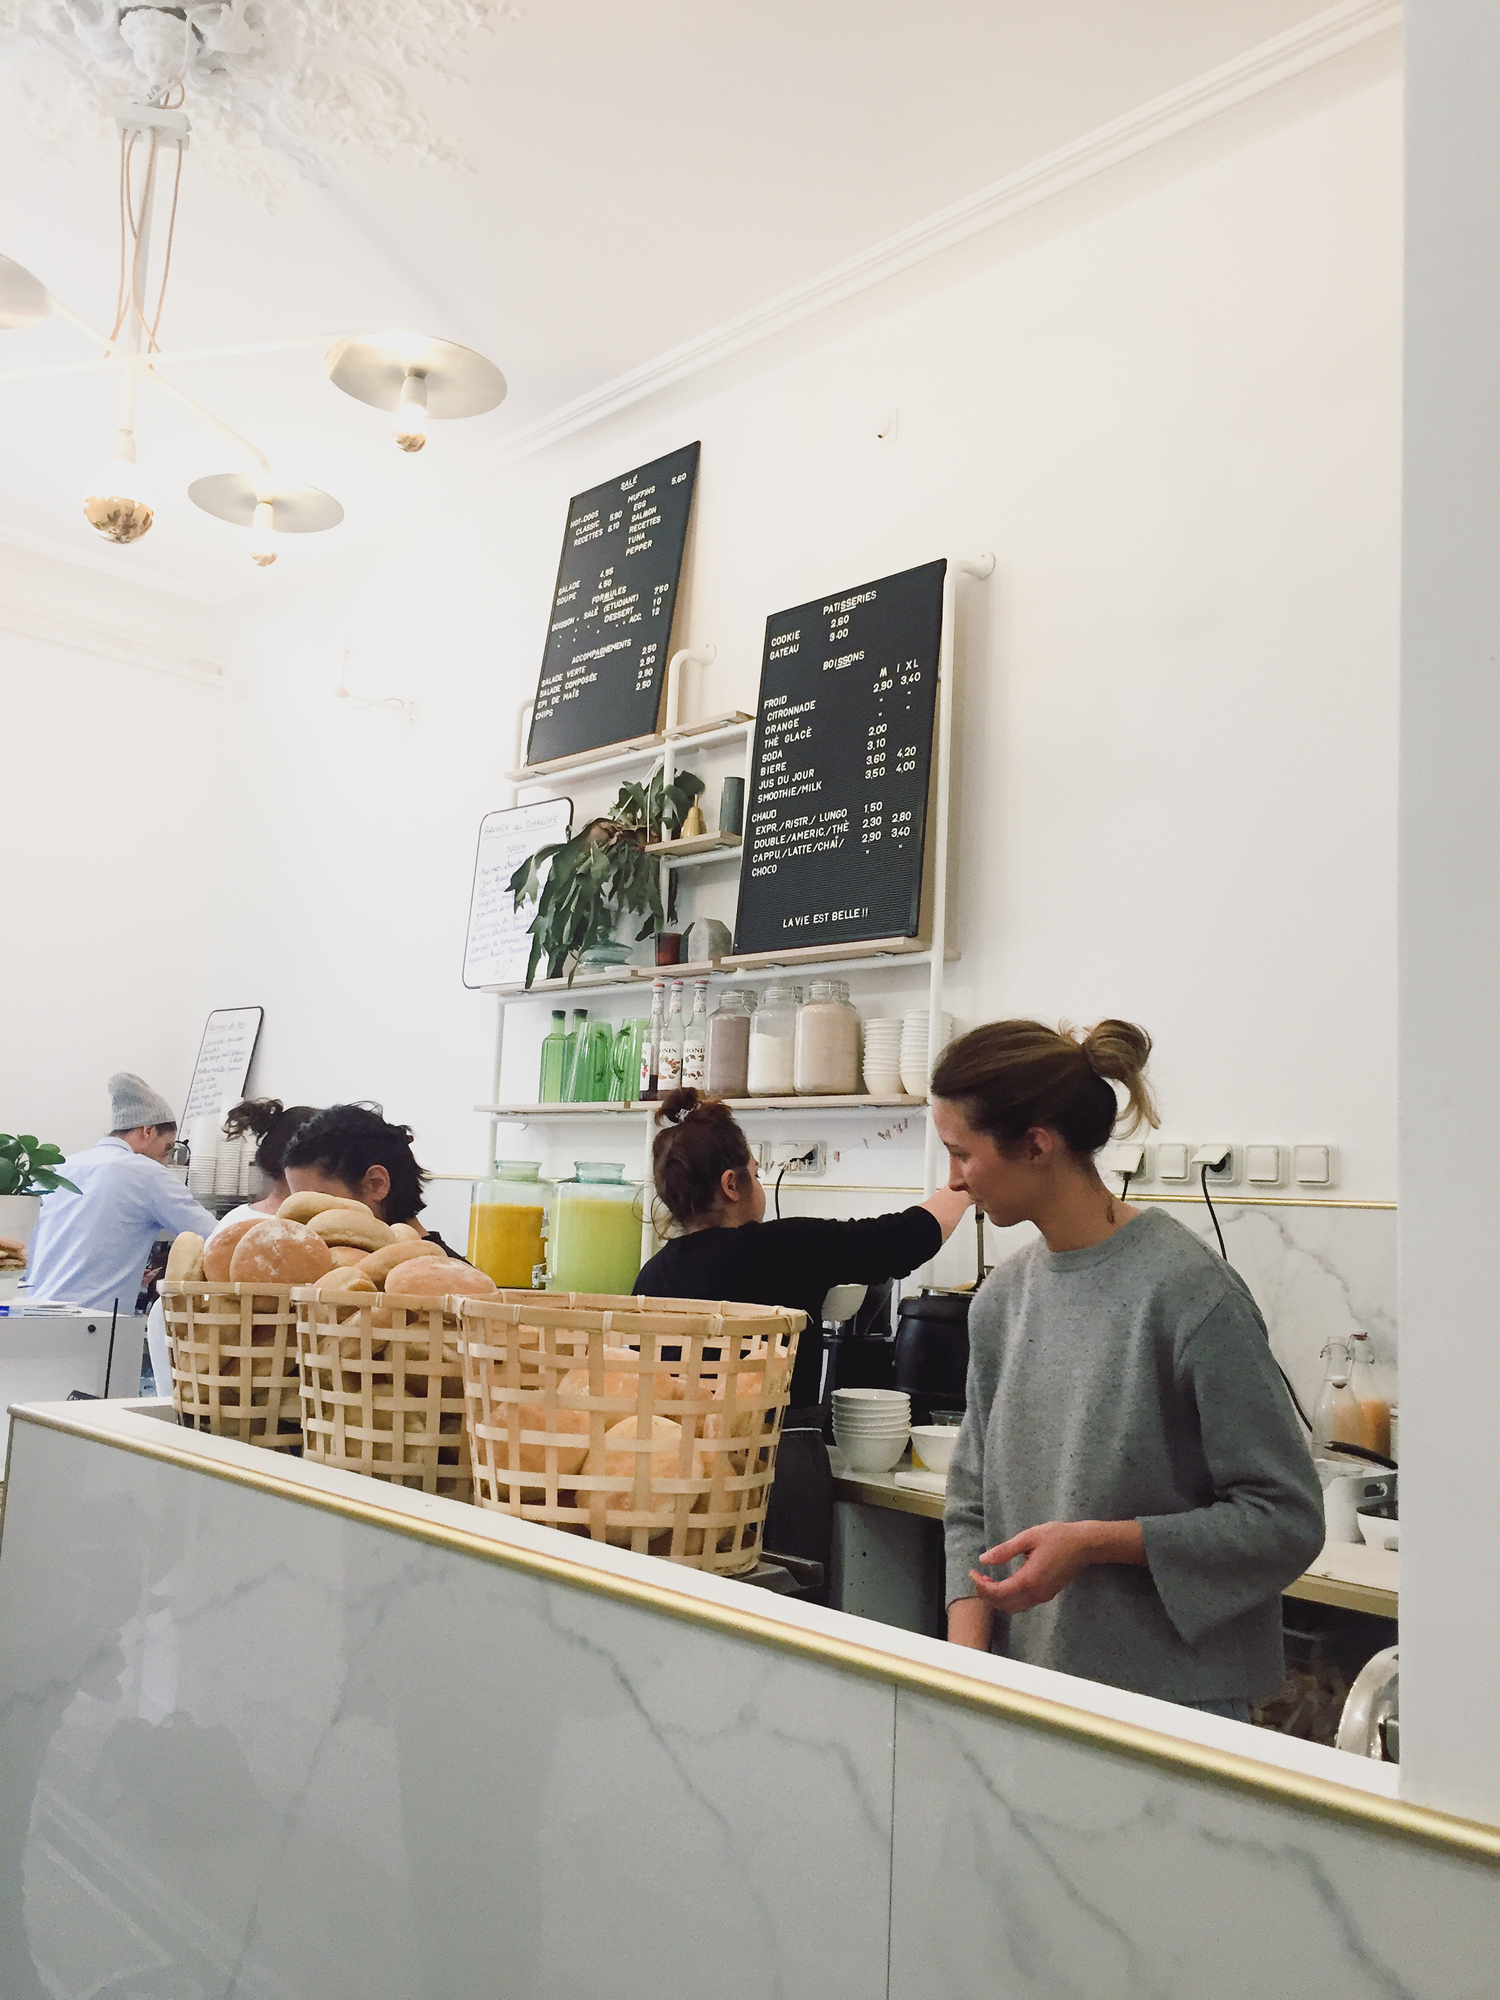 Nosh is one of the best places for brunch in Aix en Provence. Check out our top locals' picks on where to eat in Aix en Provence and avoid the tourist traps.